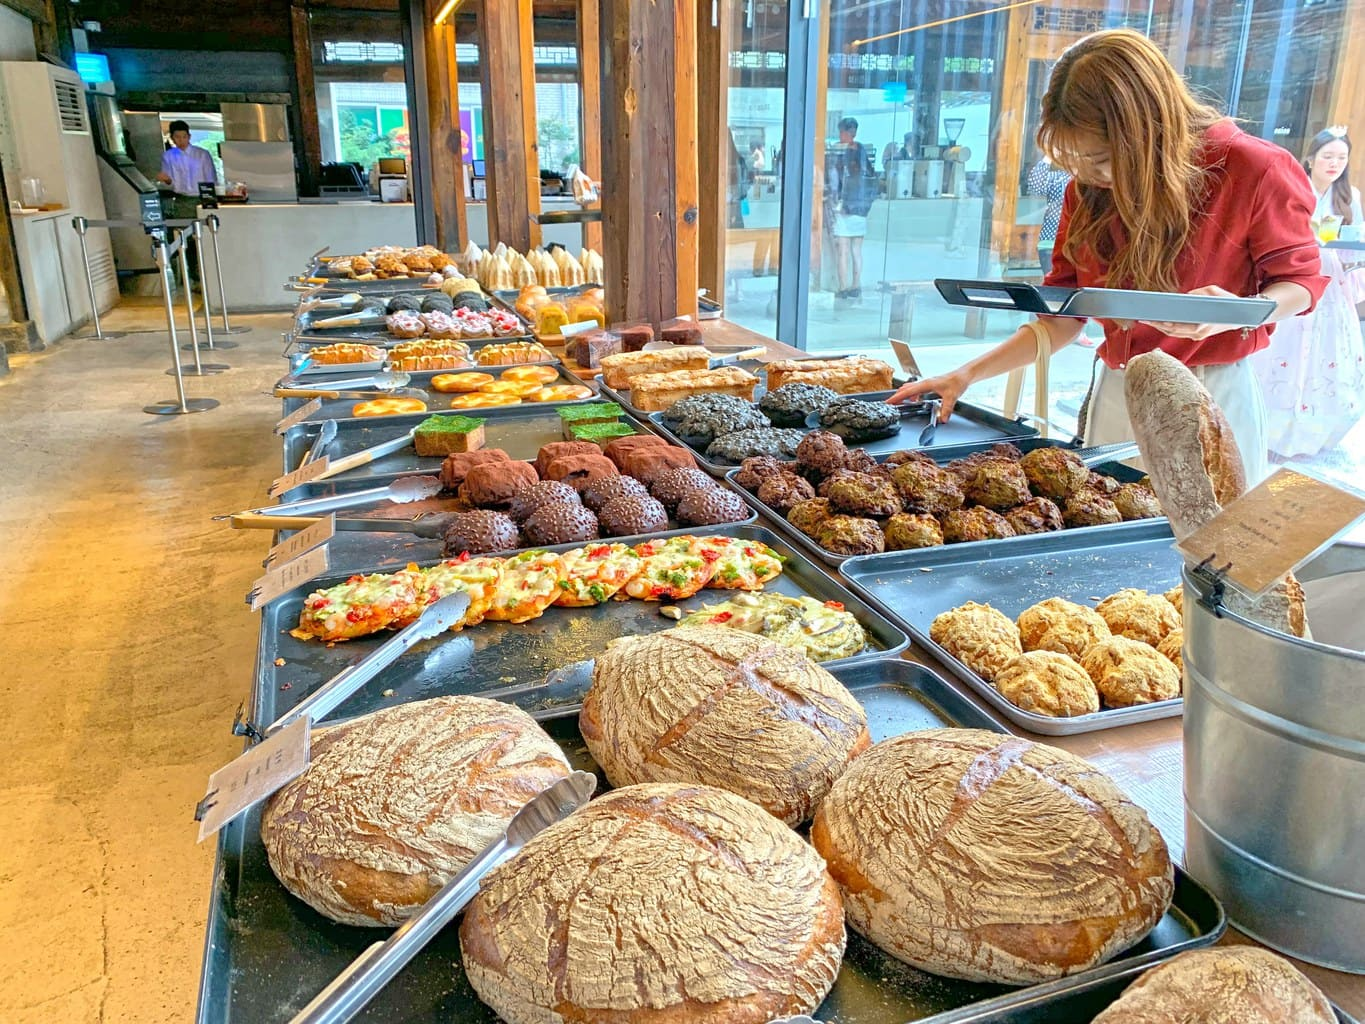 Delicious baked goods at Cafe Onion